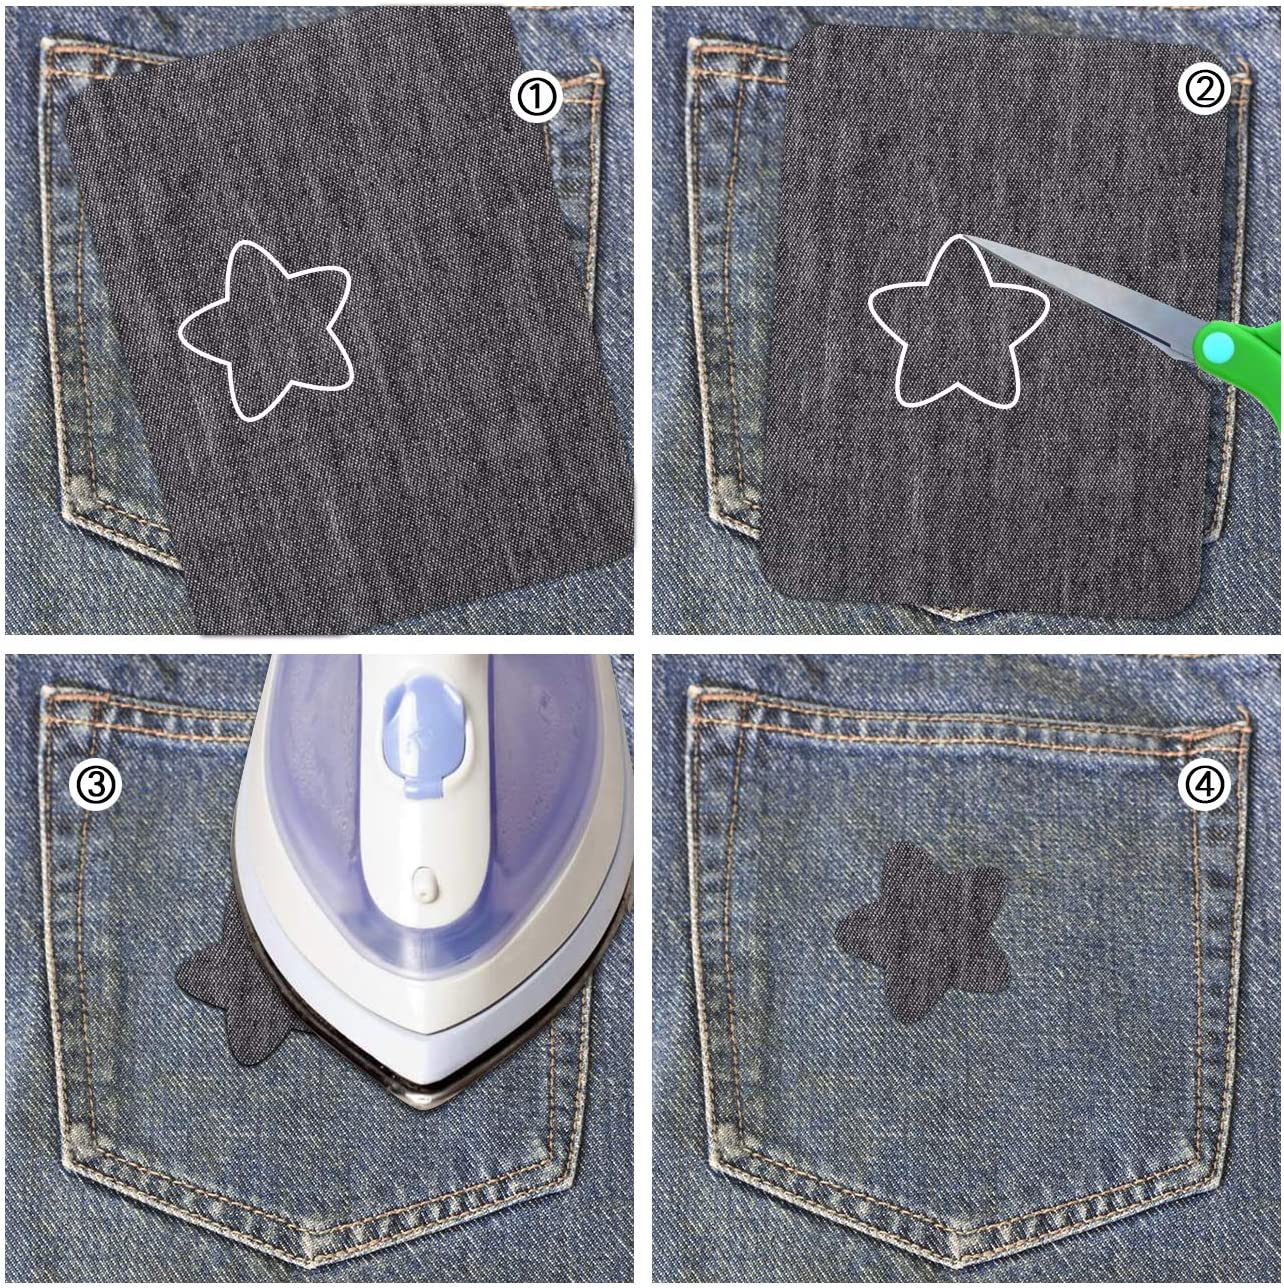 5 Colors Denim Fabric Iron on Patches for Jeans Repair Kit Set Art Craft Decoration Ornaments Naler 30pcs Iron-on-Patch